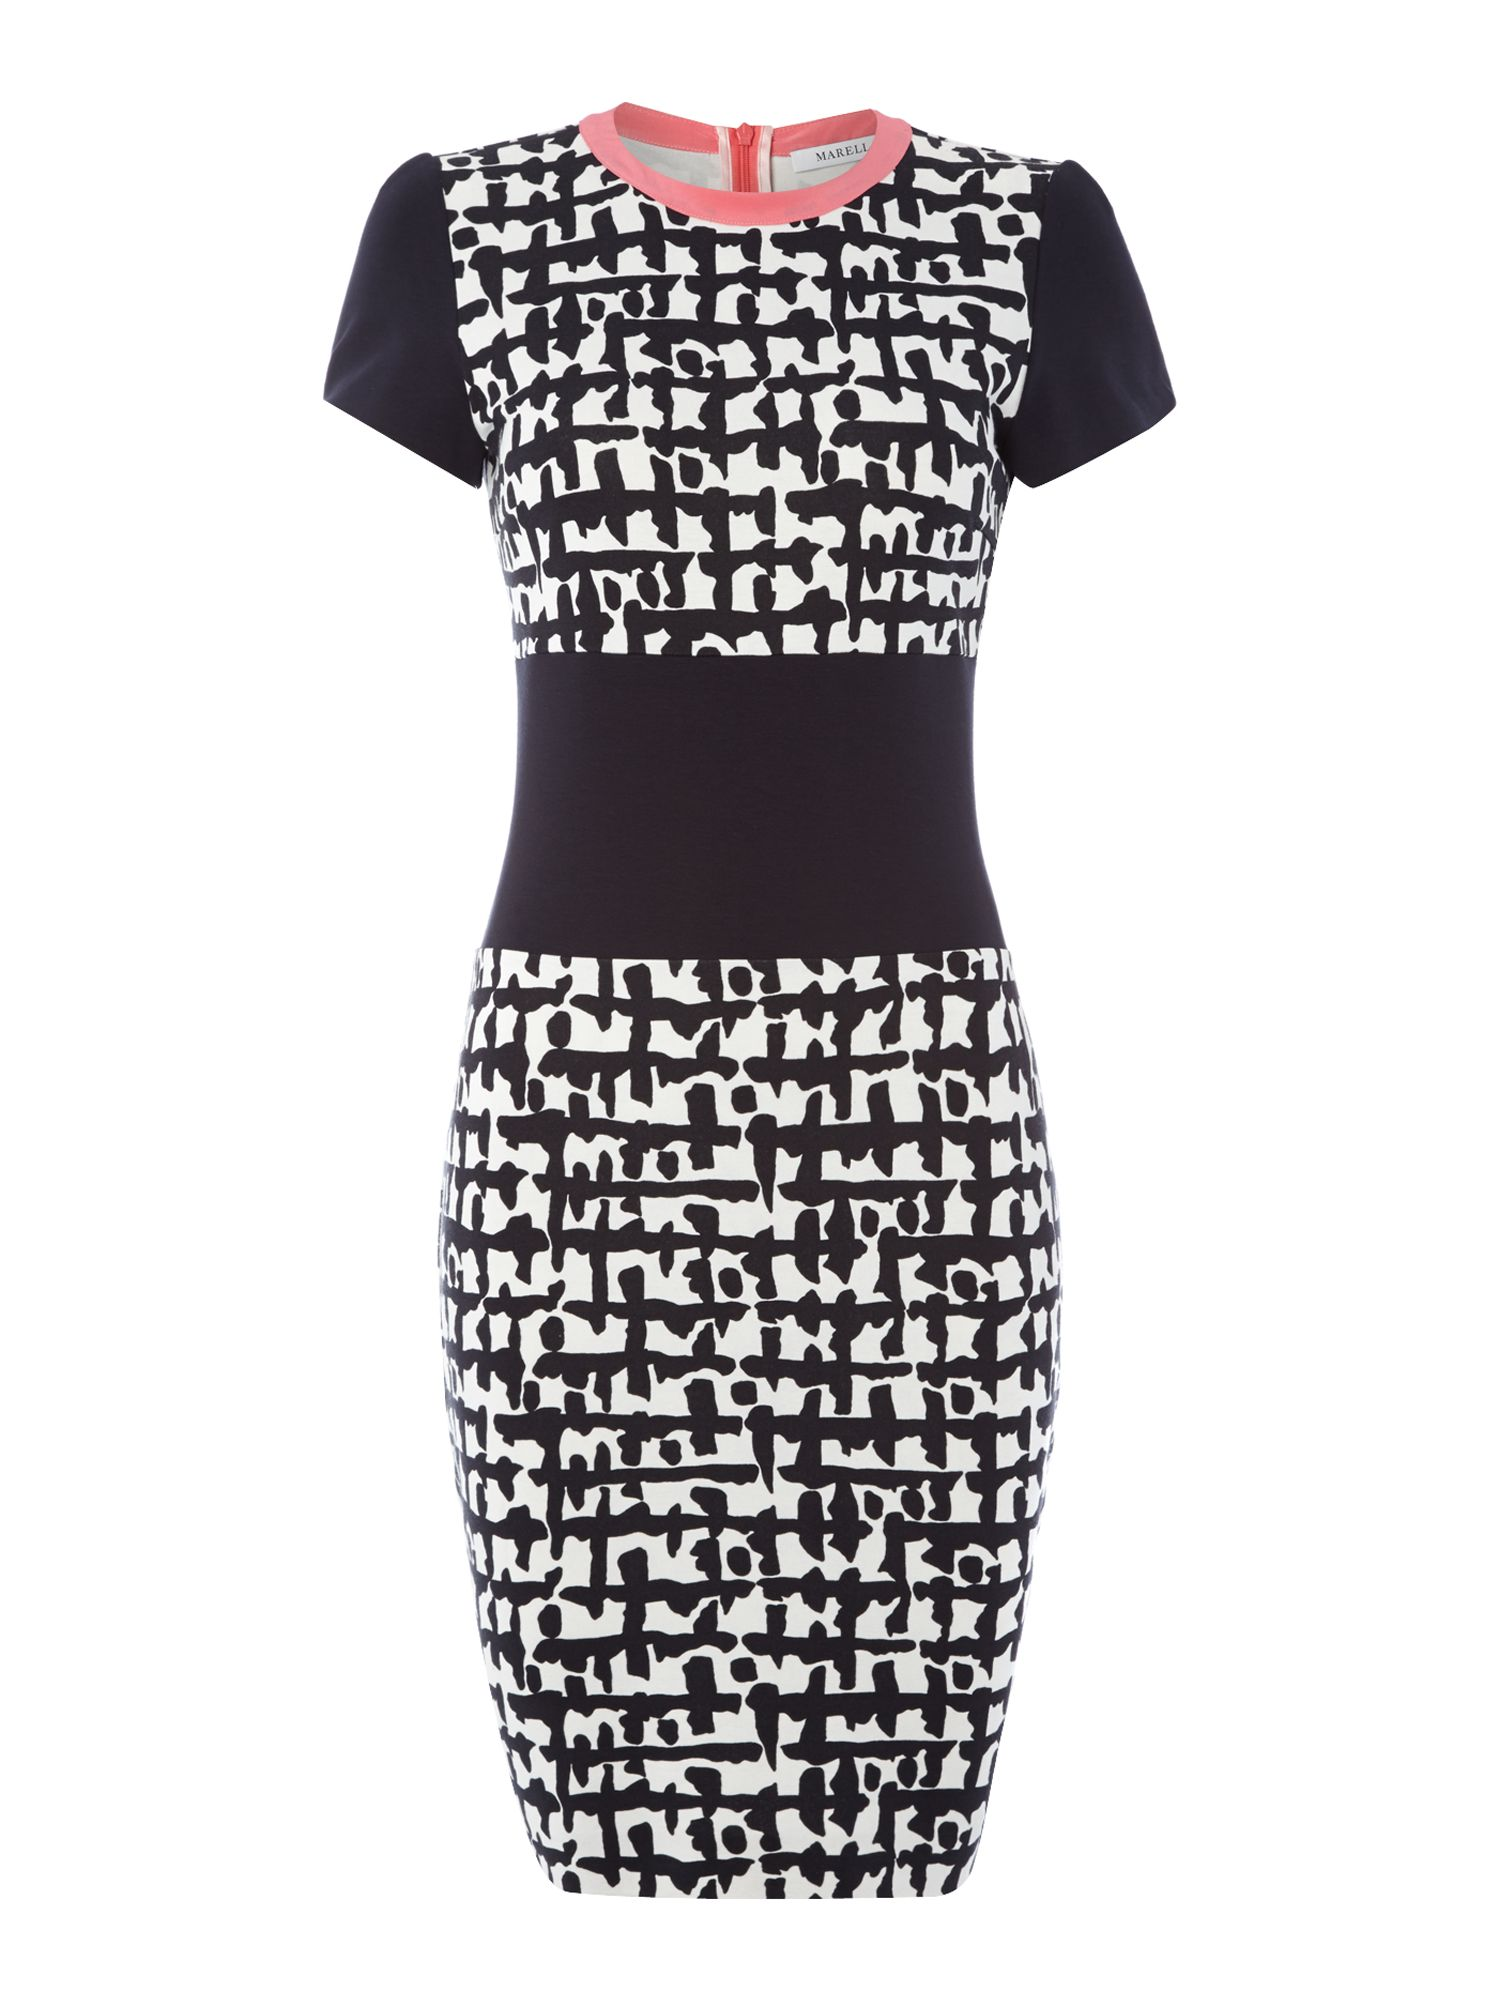 Yale graphic print dress with contrast collar